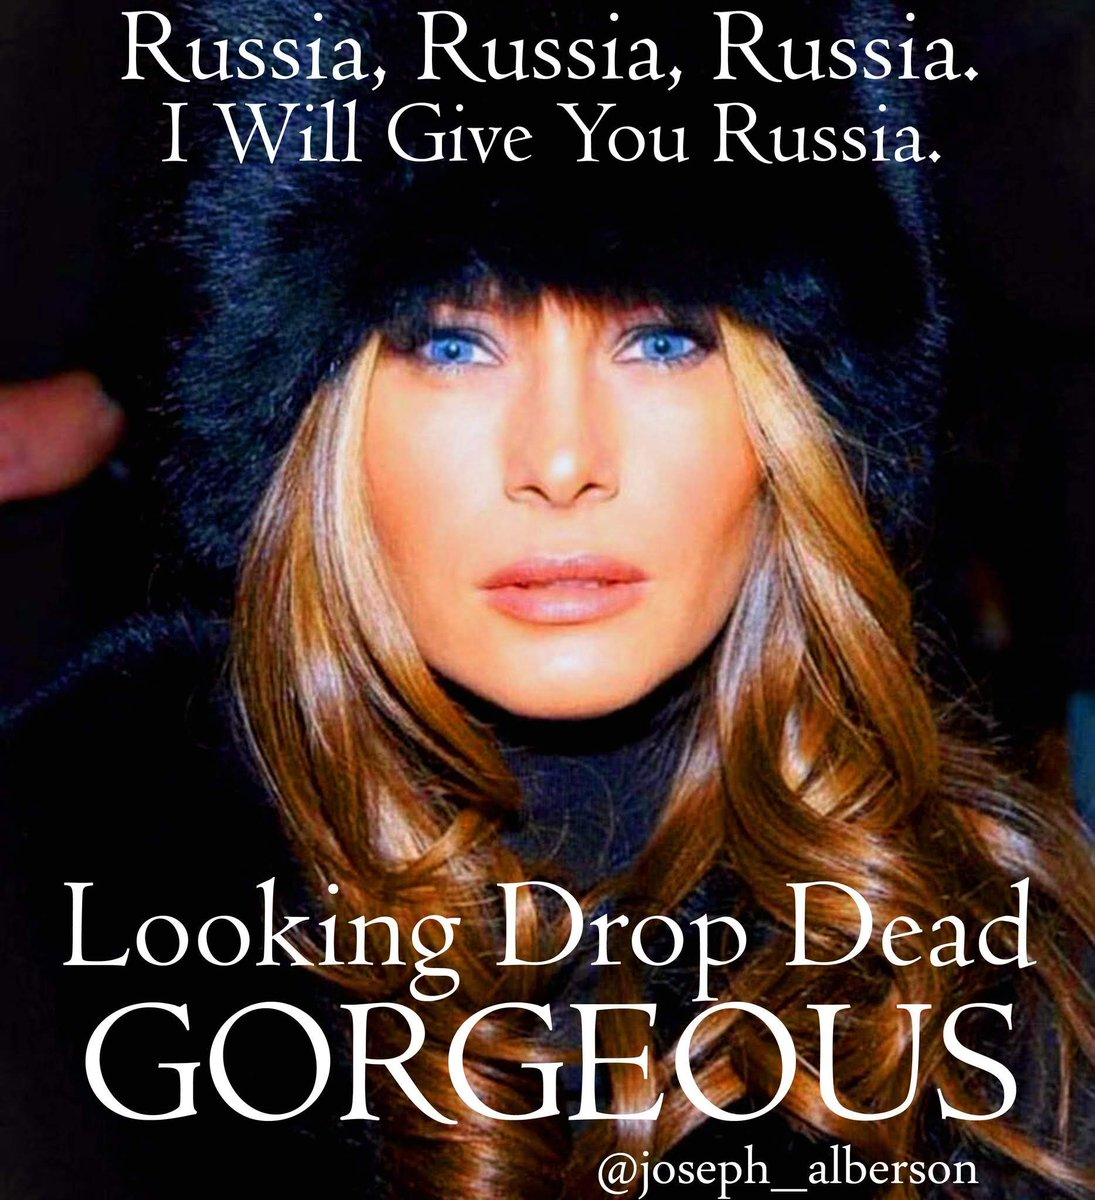 THERE WILL NEVER BE ANOTHER FIRST LADY THAT HAS THE WHOLE PACKAGE! 💥 BEAUTIFUL 💥 CLASS 💥 BRAINS 💥 KIND 💥 Humble 💥 Loving 💥 Giving 💥 Melania Loves America❤️🇺🇸 💥 Melania Was Raised In A War 💥 Torn Poor Country     🇺🇸 AMERICA'S FIRST LADY 🇺🇸   #MELANIATRUMP💫💫💫💫